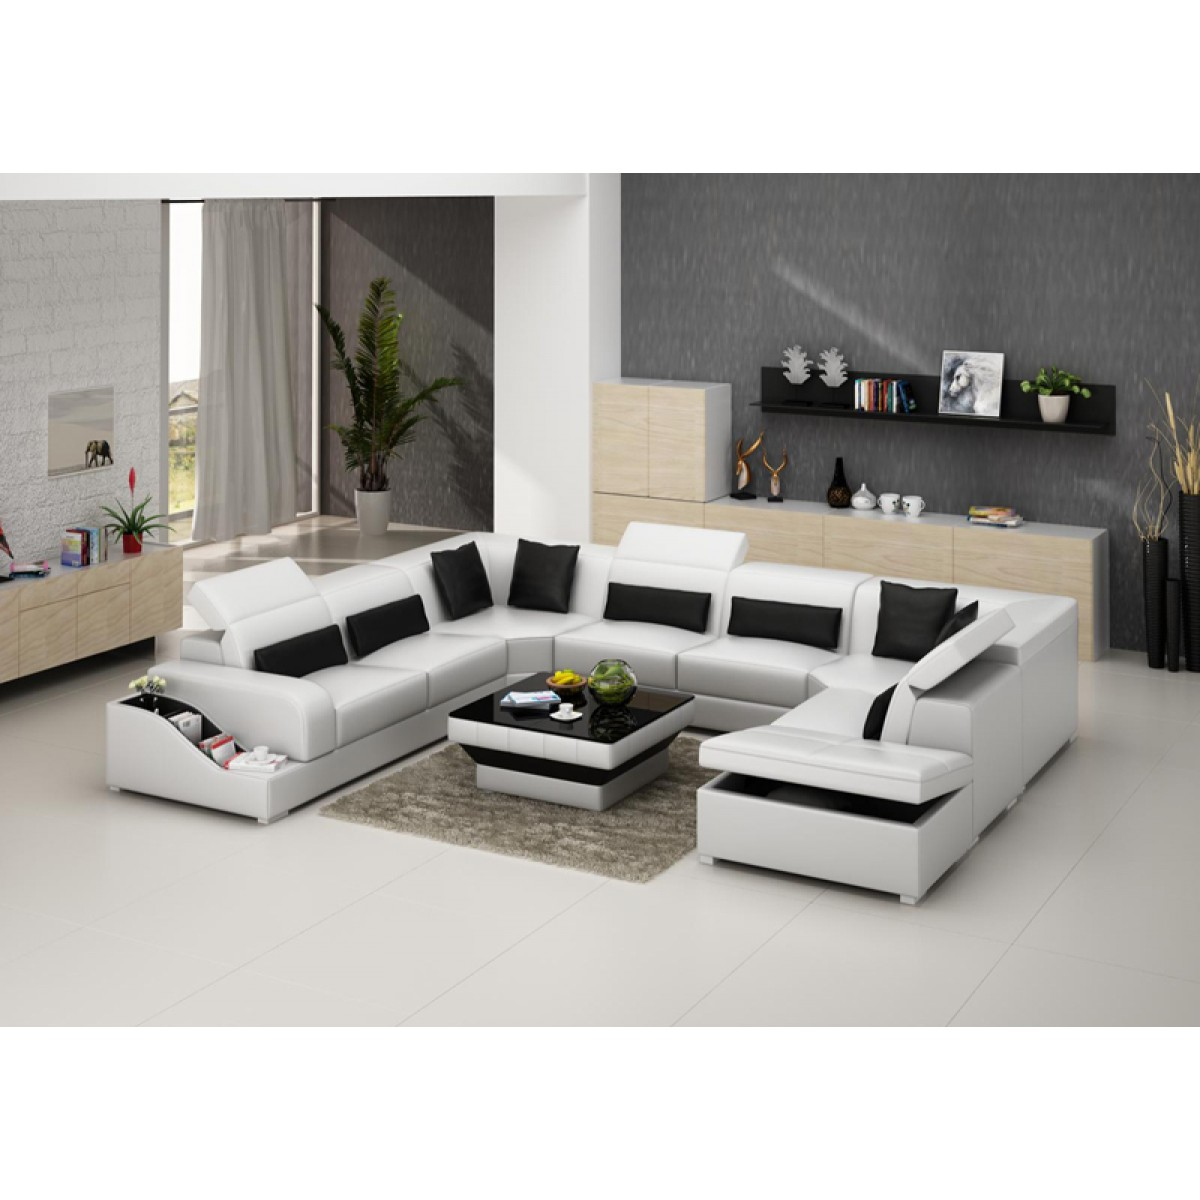 Canape d angle 6 8 places royal sofa id e de canap et for Monsieur meuble canape d angle cuir